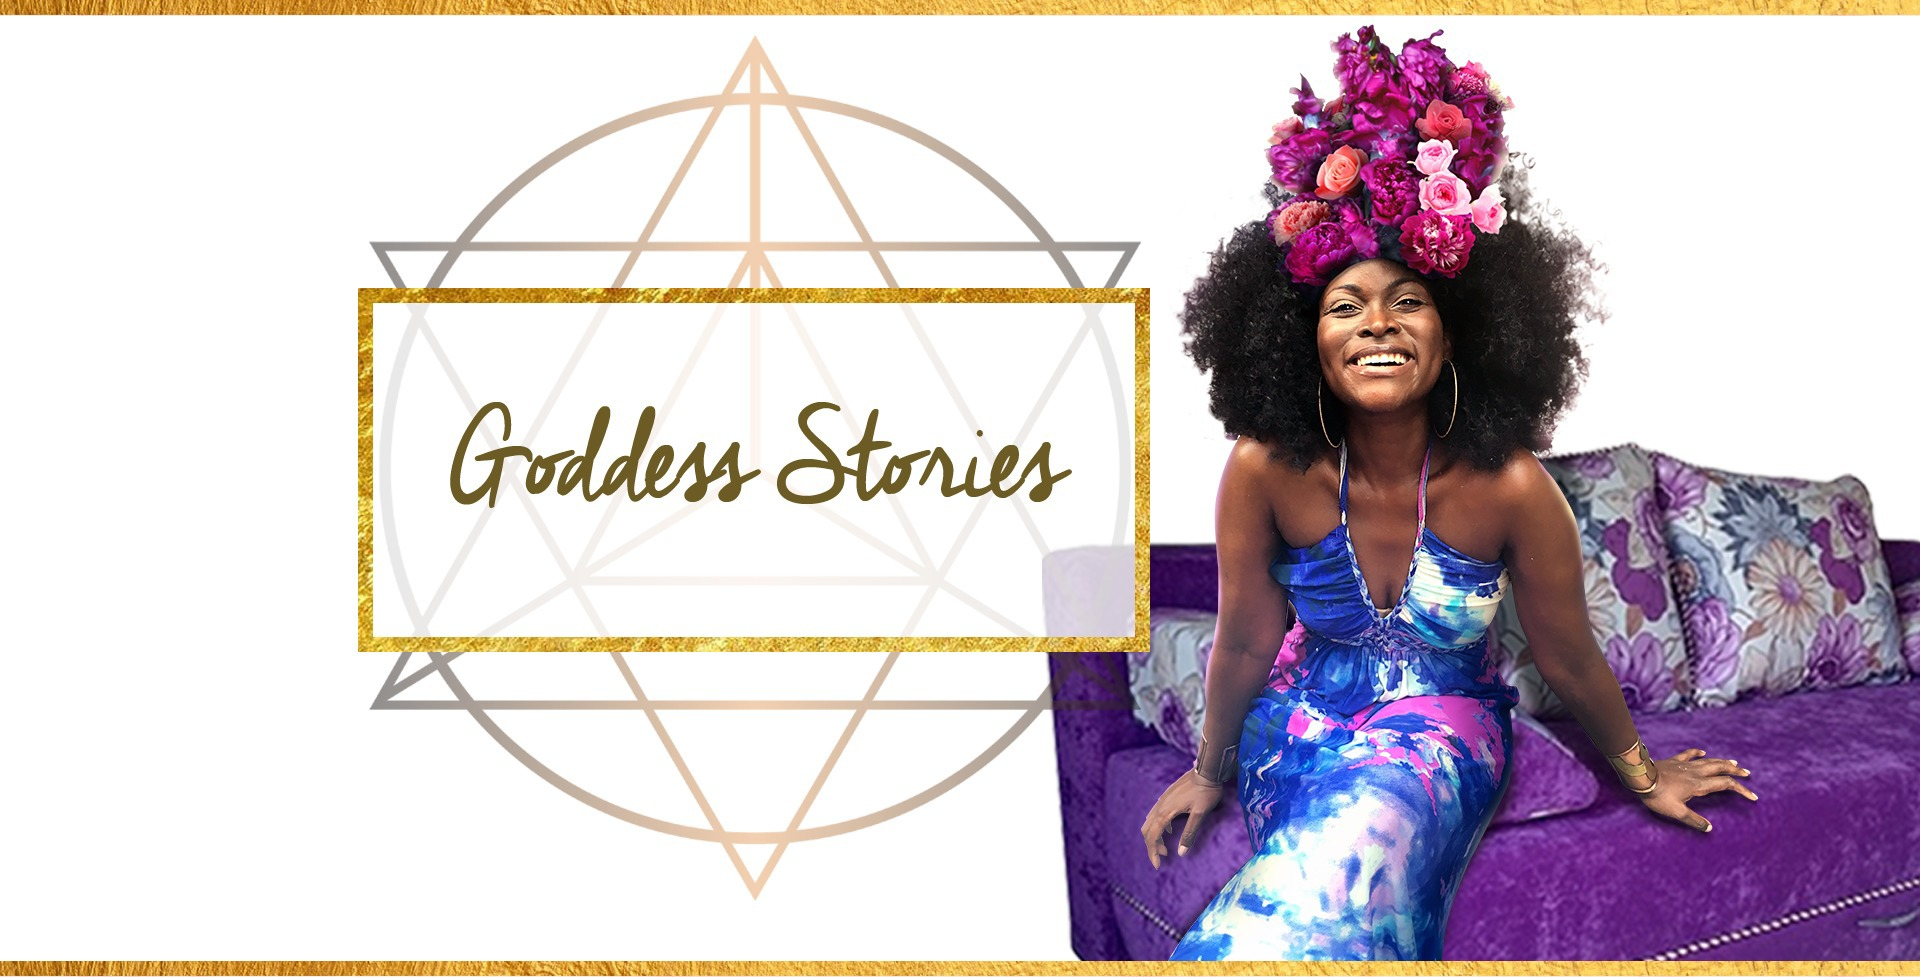 Goddess Stories Abiola Abrams